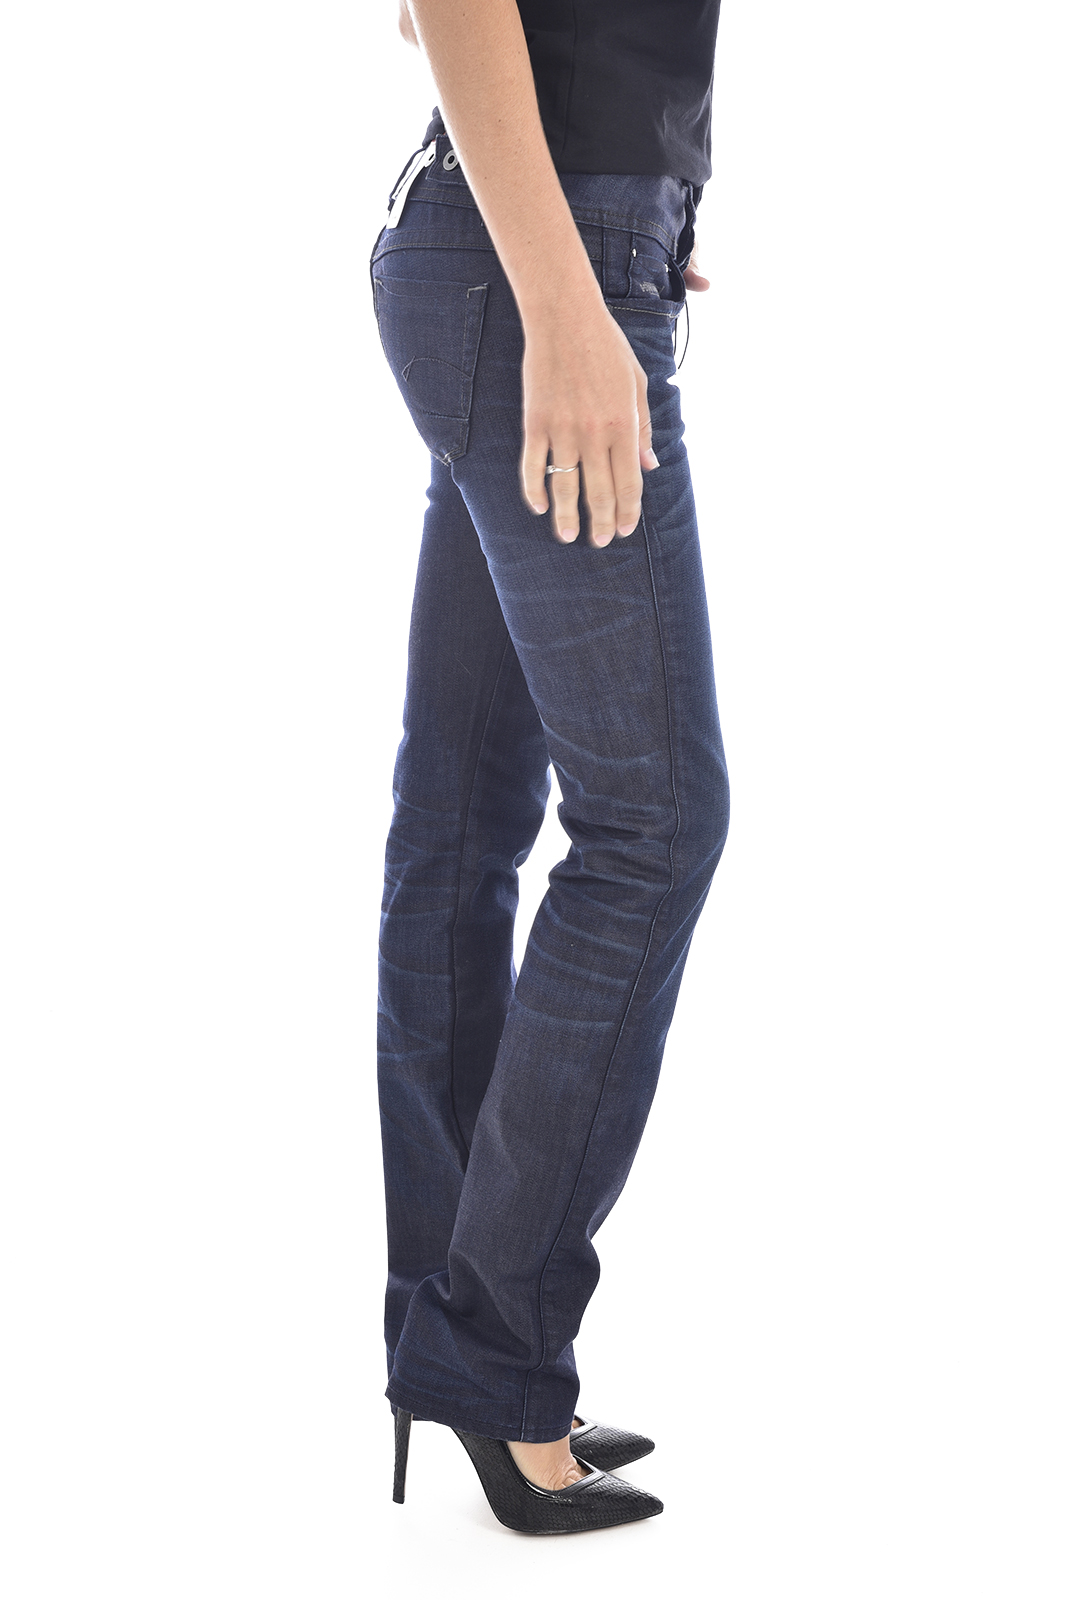 Jeans   G-star 60820-5643-89 new ford bleu